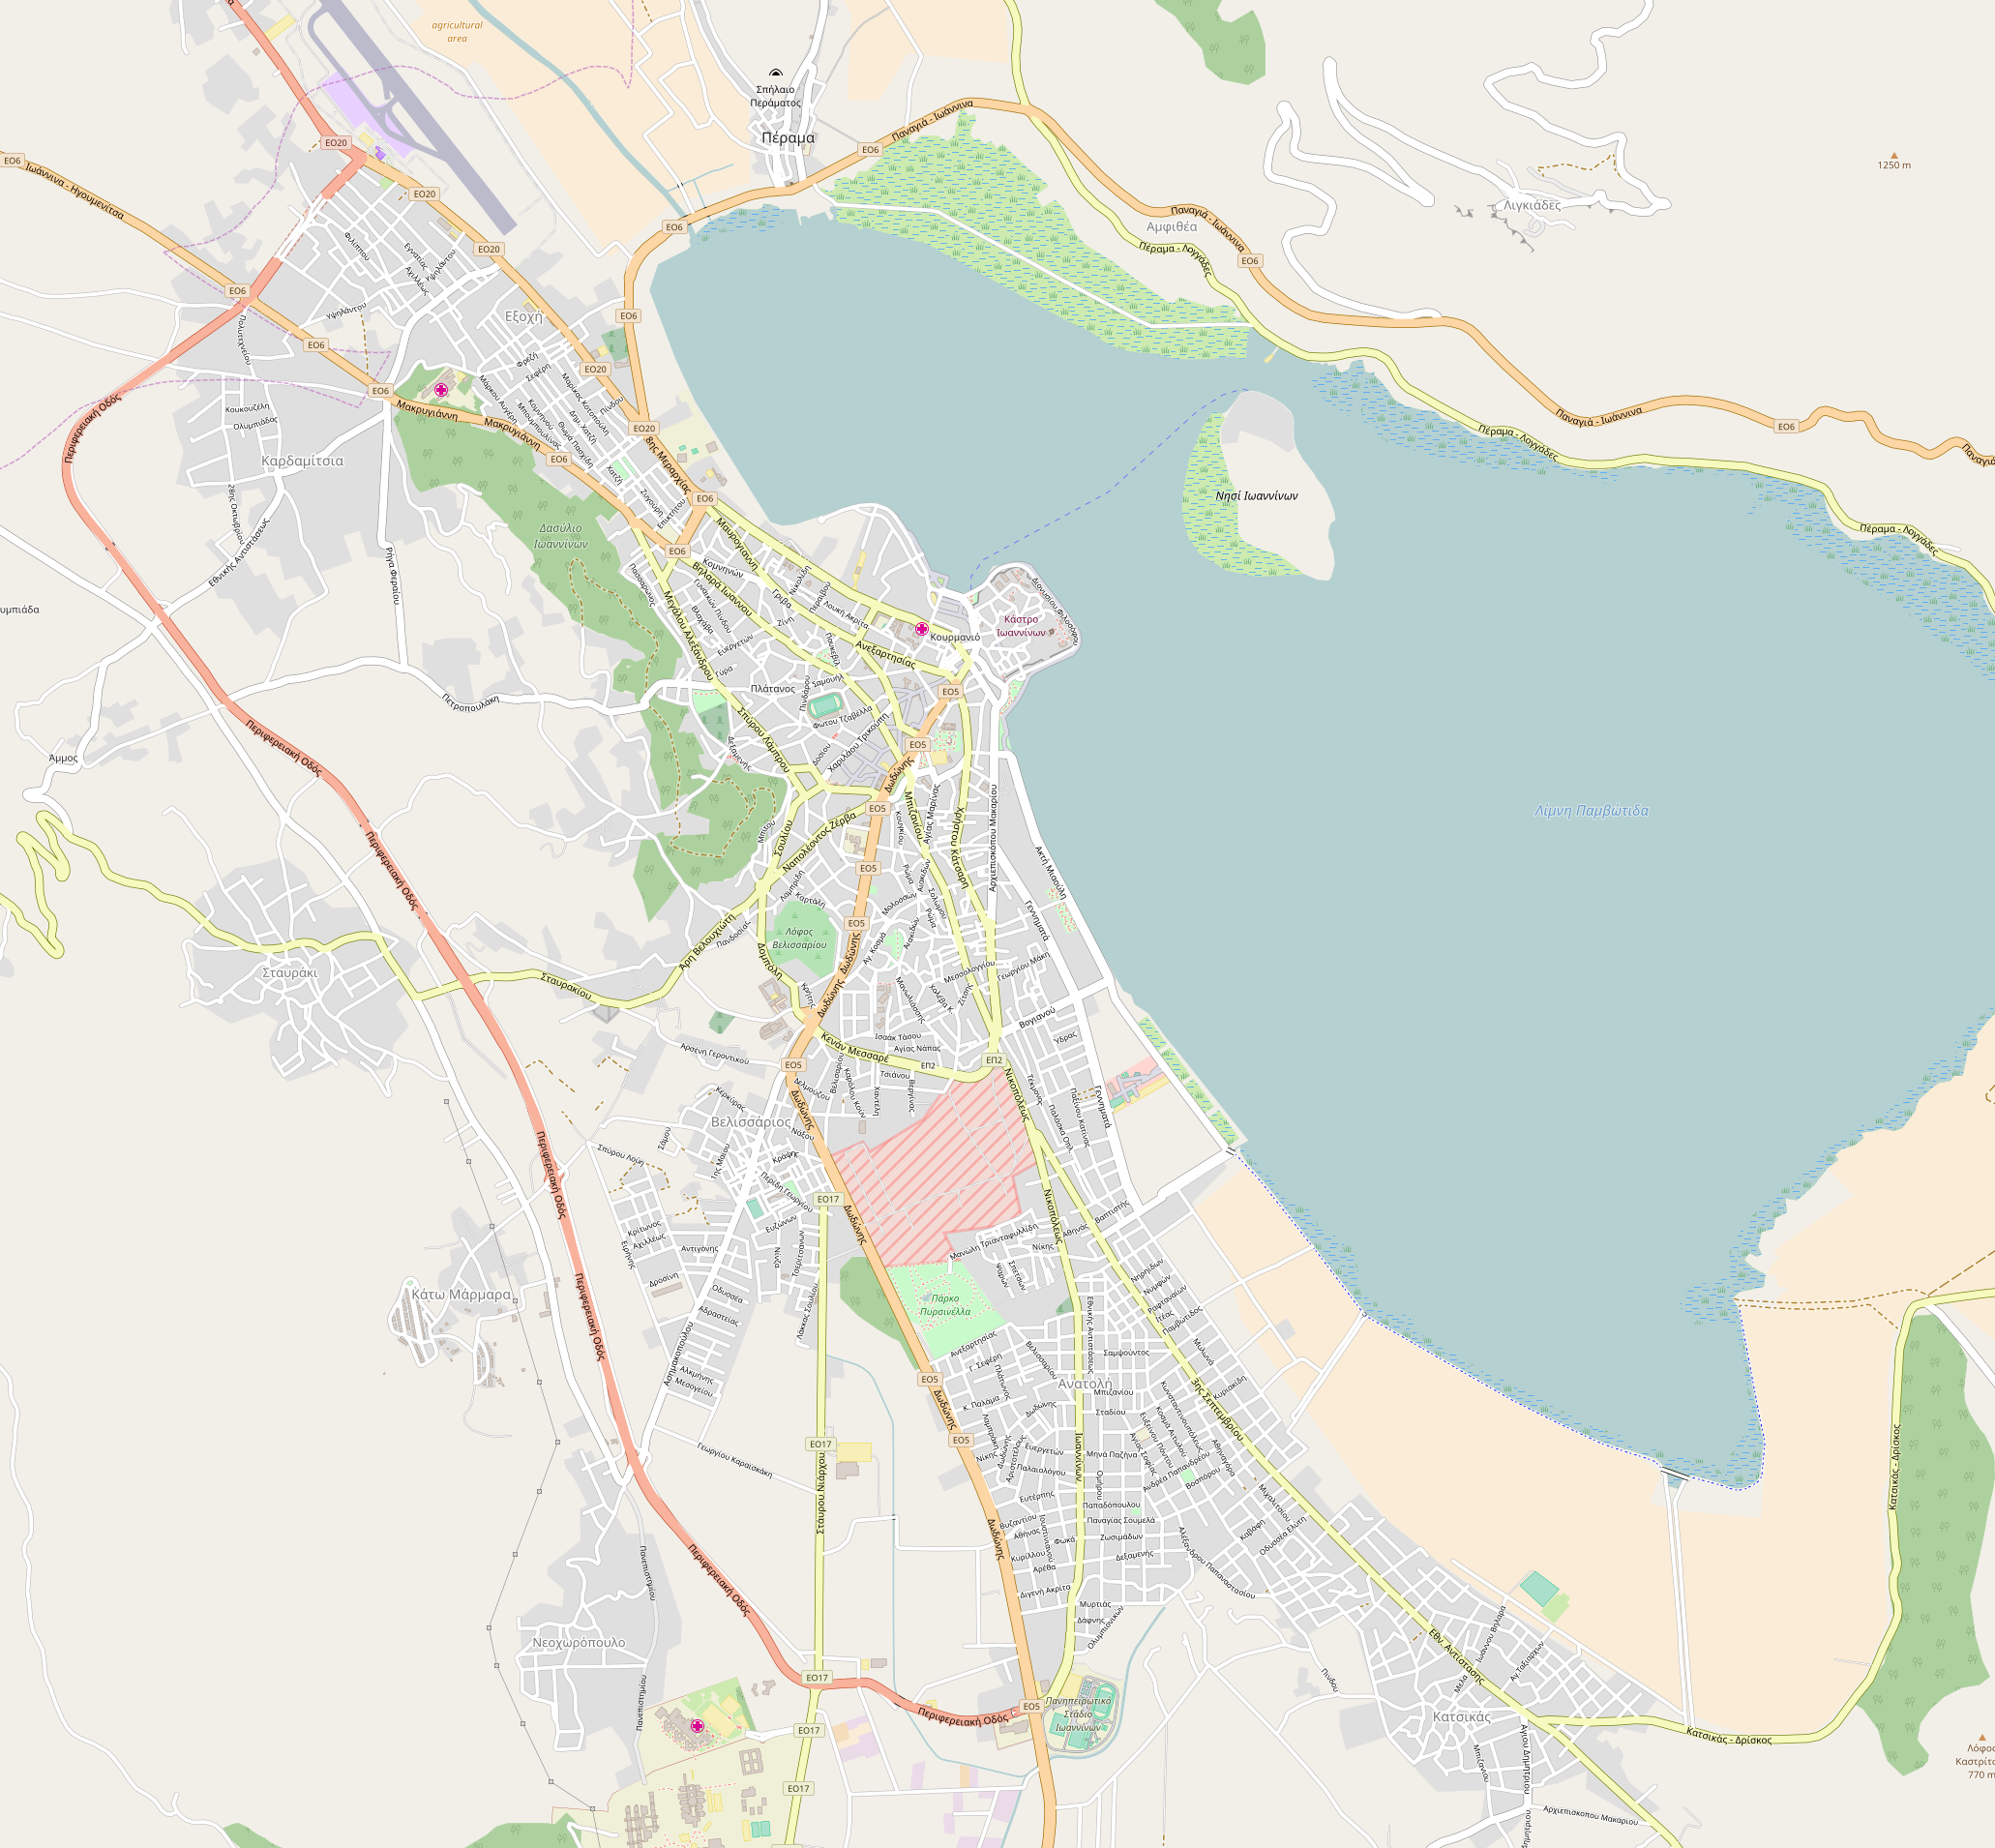 FileMap of Ioanninapng Wikimedia Commons